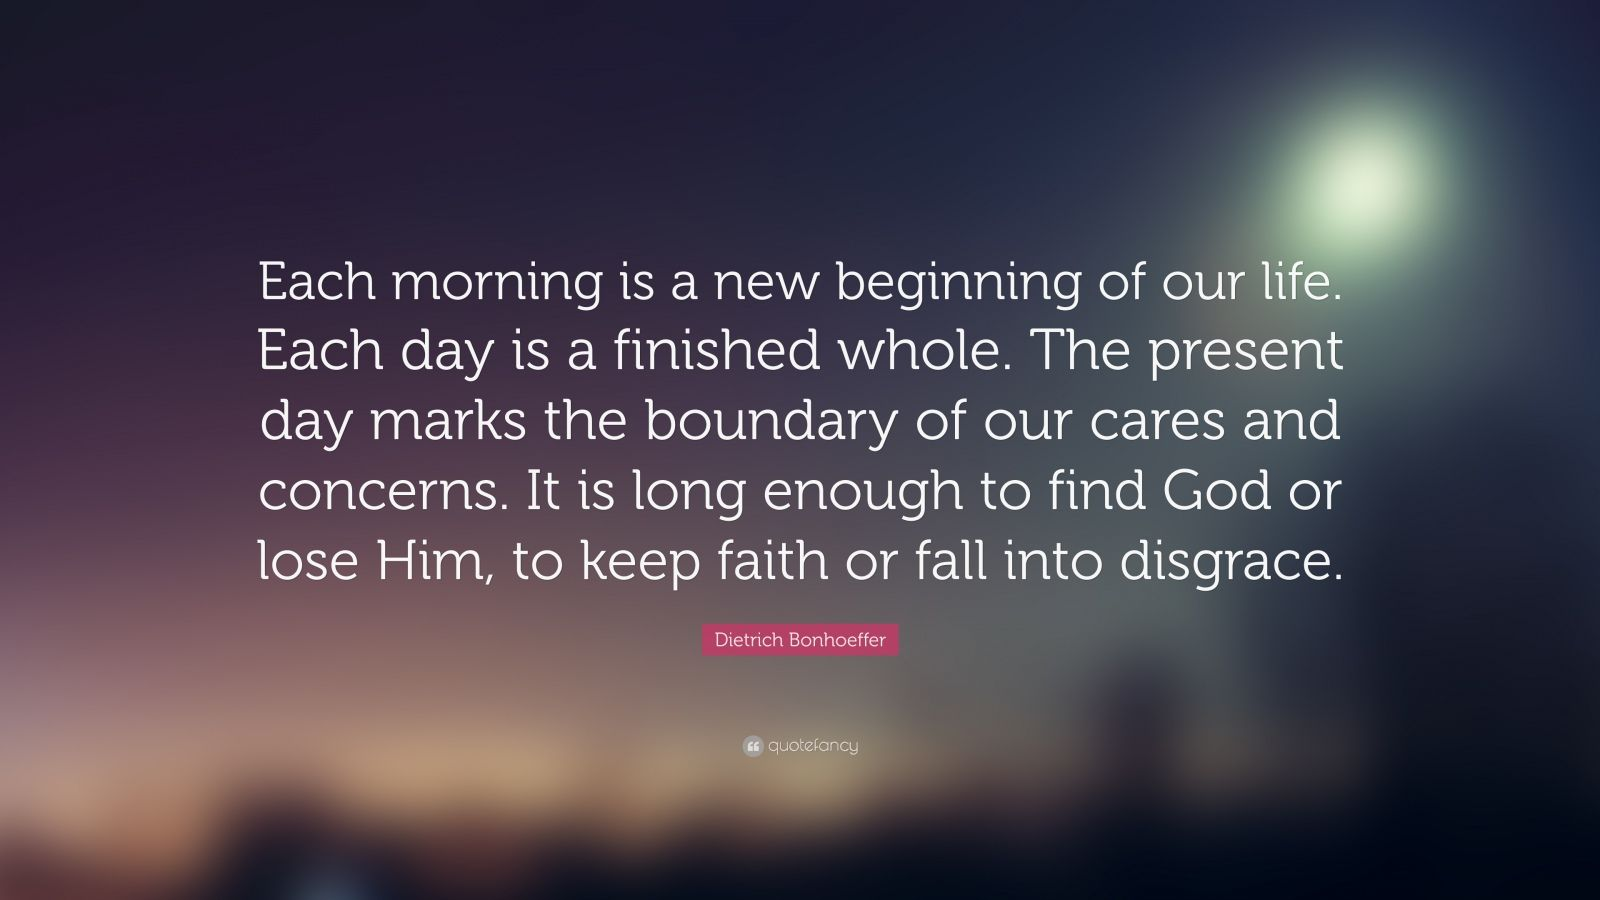 "Dietrich Bonhoeffer Quote: ""Each morning is a new beginning of our life. Each day is a finished whole. The present day marks the boundary of our cares and concerns. It is long enough to find God or lose Him, to keep faith or fall into disgrace."""